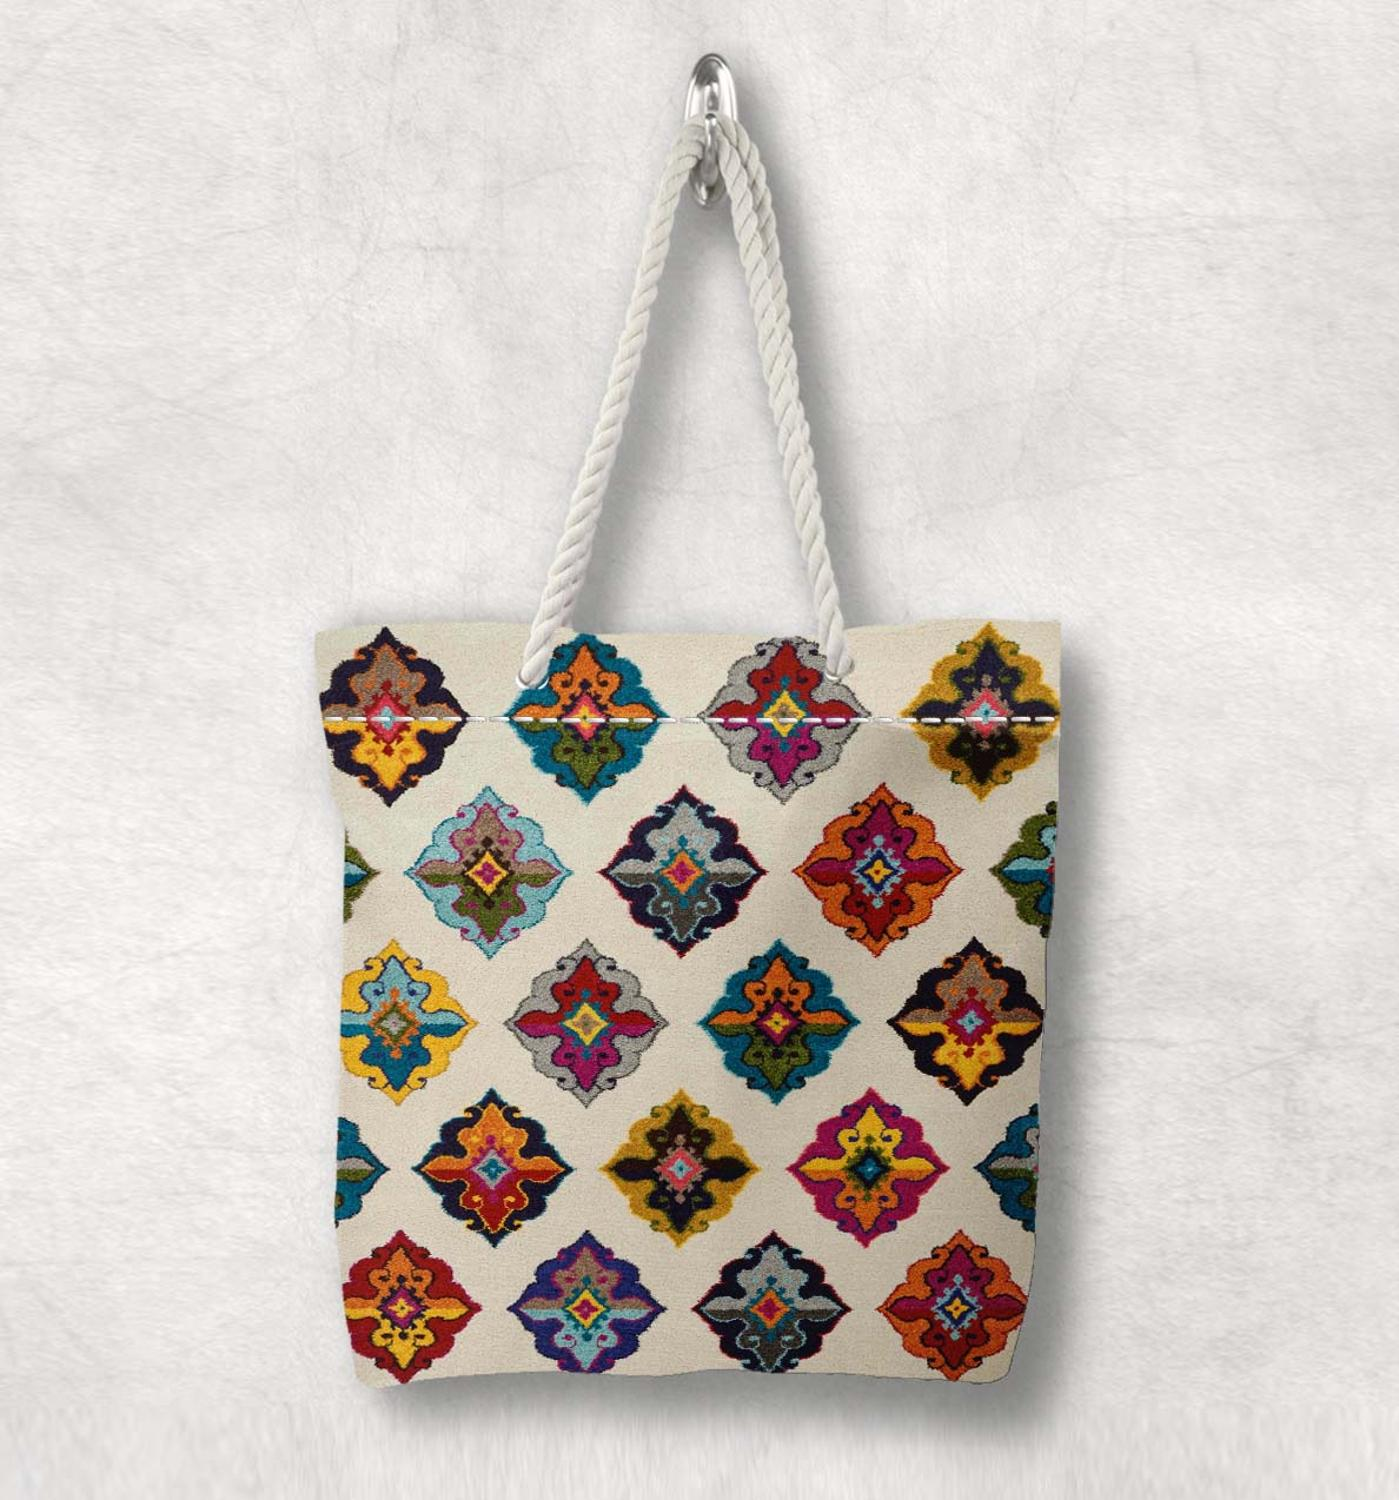 Else Colored Tiles Turkish Kilim Design New Fashion White Rope Handle Canvas Bag Cotton Canvas Zippered Tote Bag Shoulder Bag